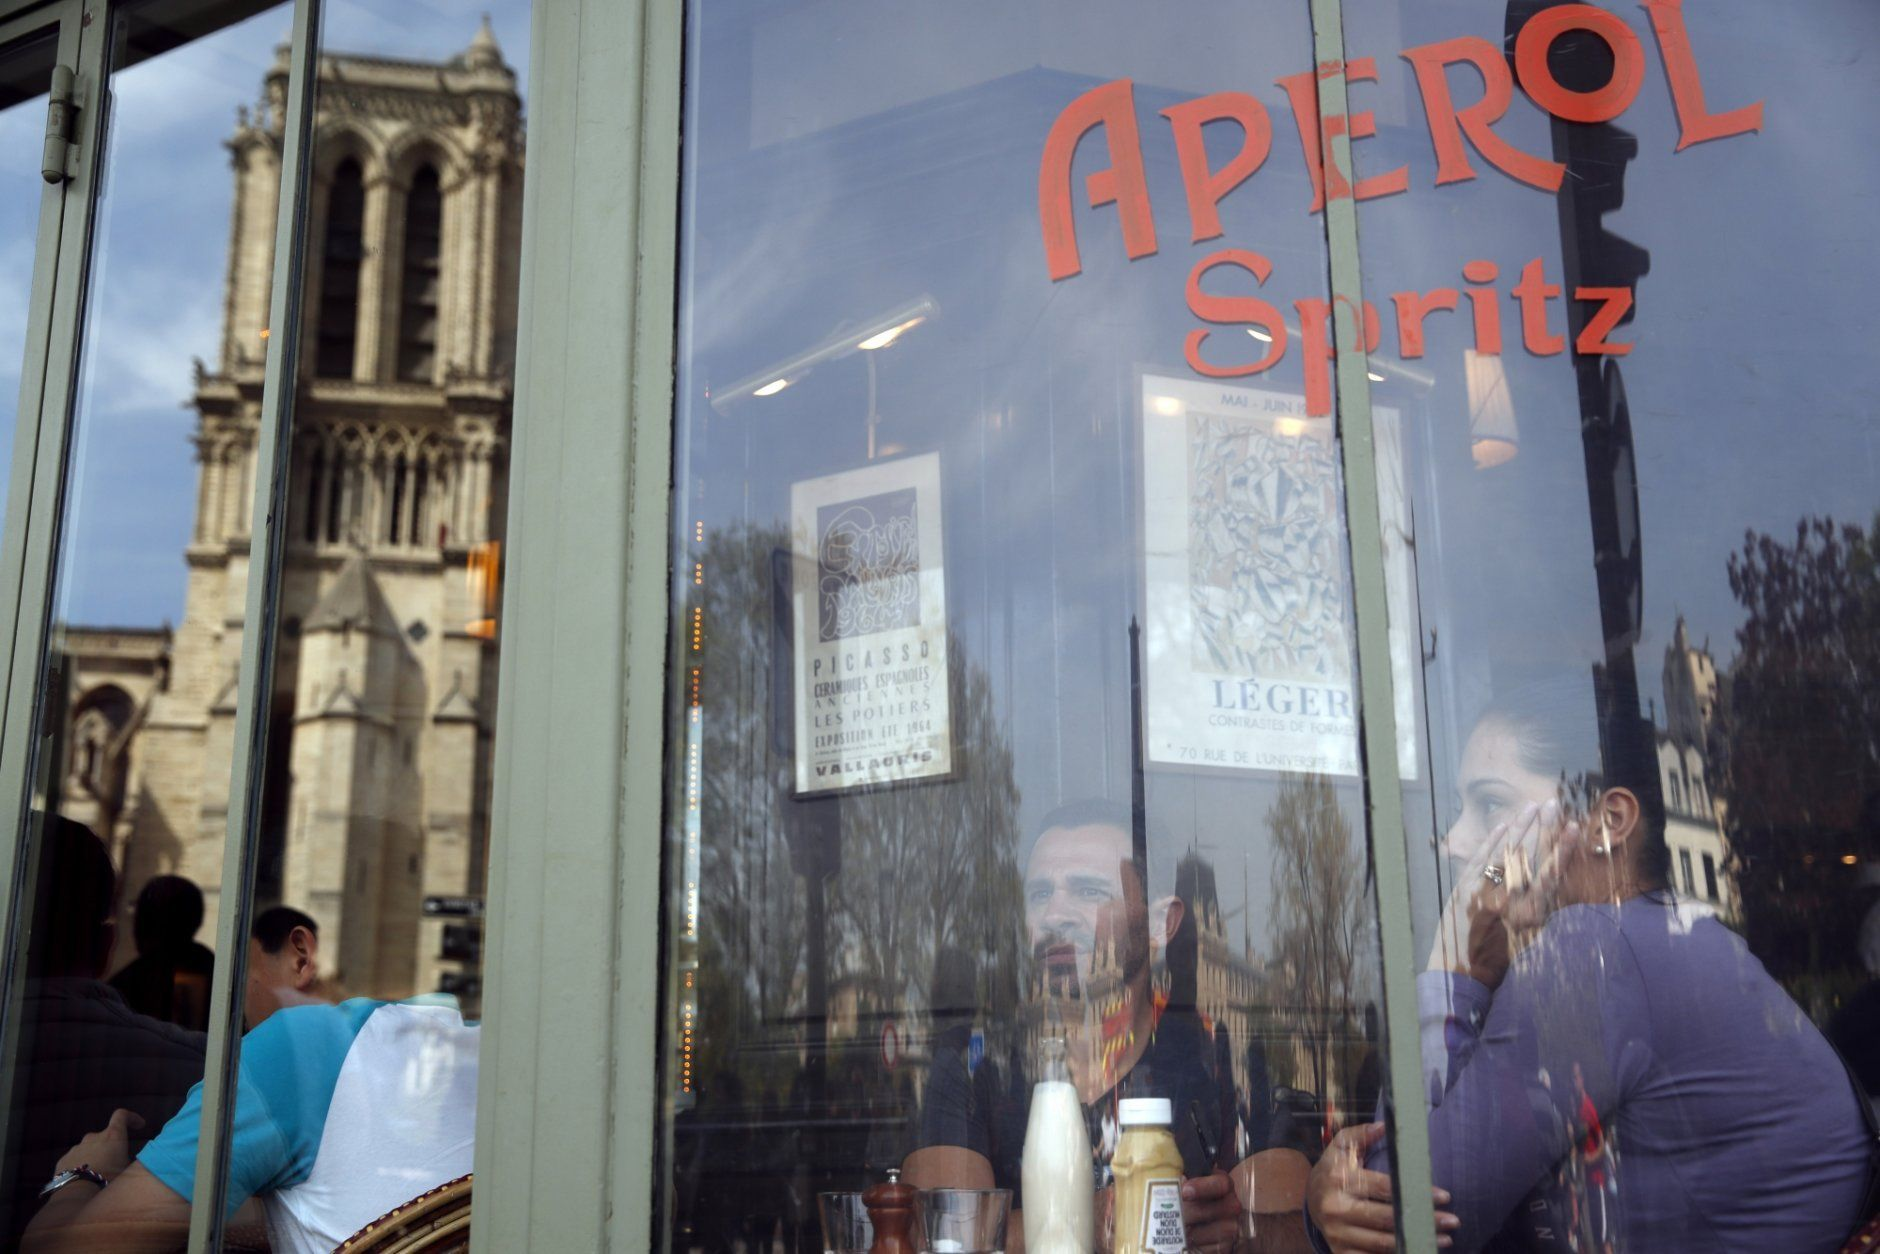 People eat at a cafe with the Notre Dame Cathedral reflected in the window in Paris, Thursday, April 18, 2019. Nearly $1 billion has already poured in from ordinary worshippers and high-powered magnates around the world to restore Notre Dame Cathedral in Paris after a massive fire. (AP Photo/Christophe Ena)